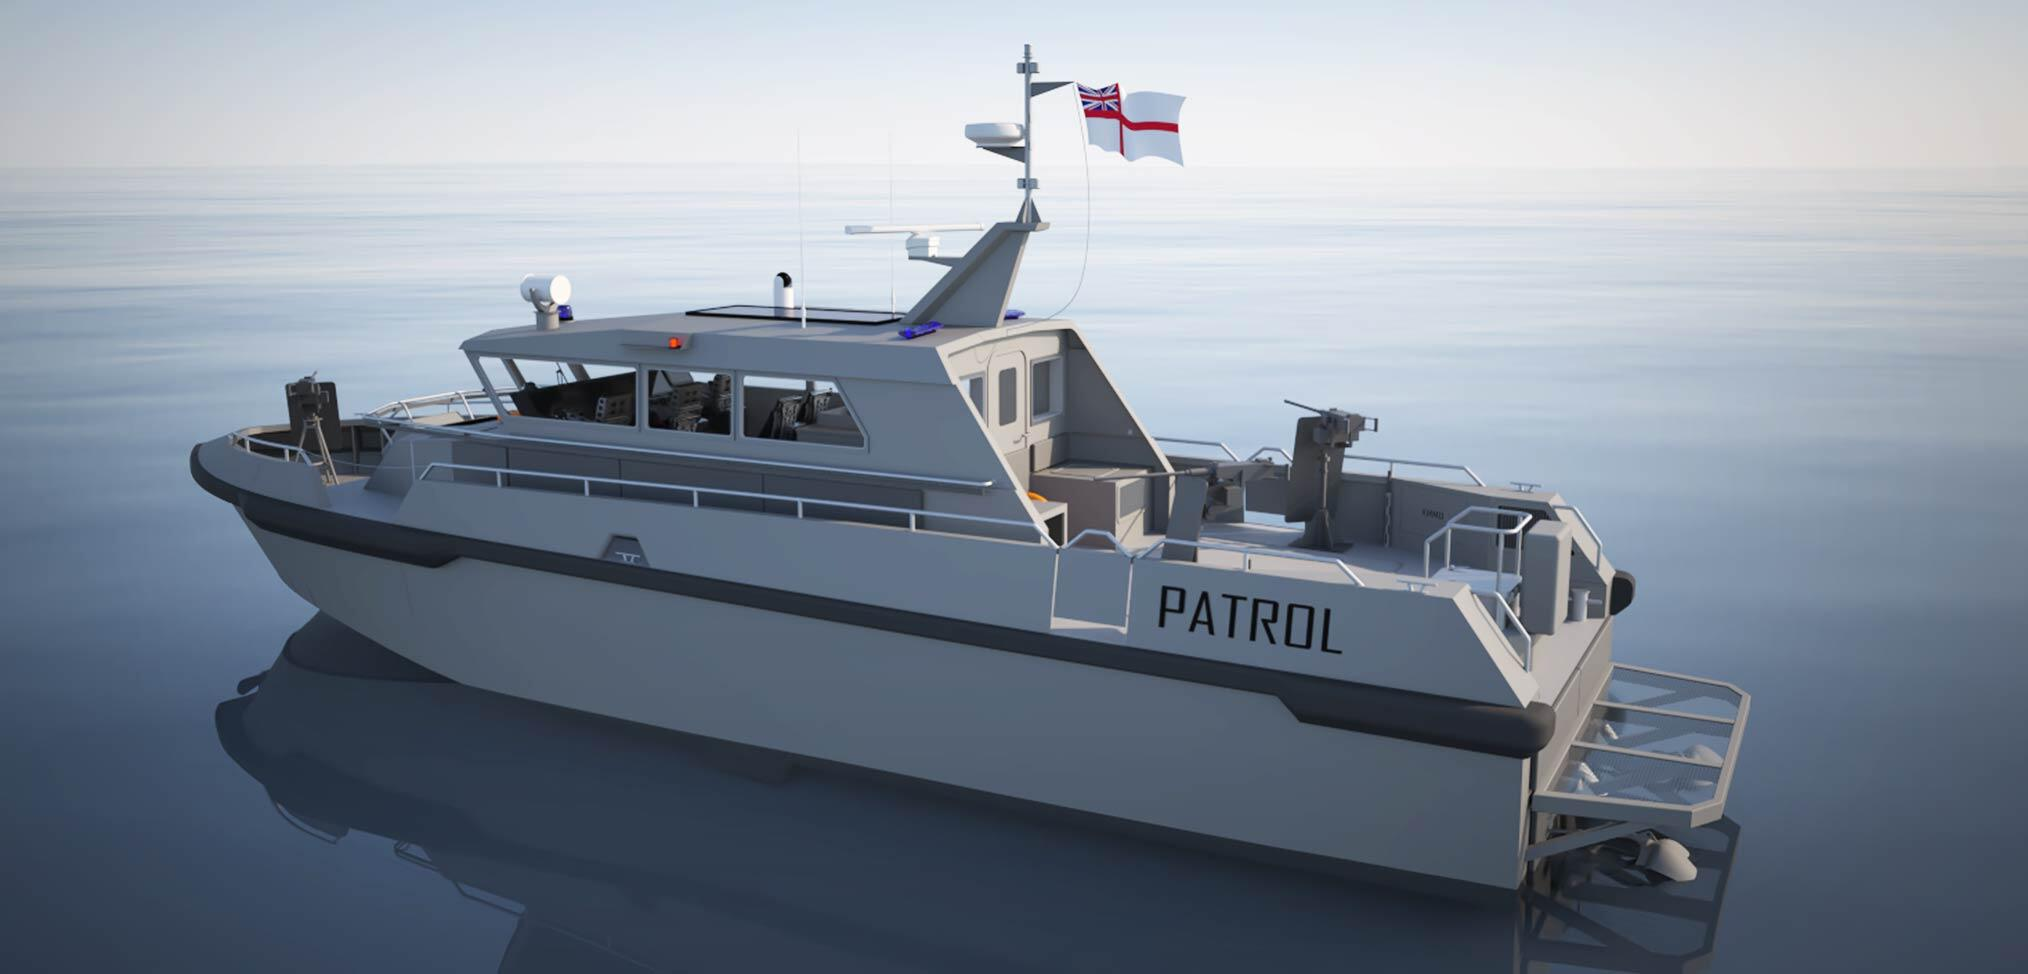 Order placed for new Royal Navy Gibraltar Squadron patrol boats